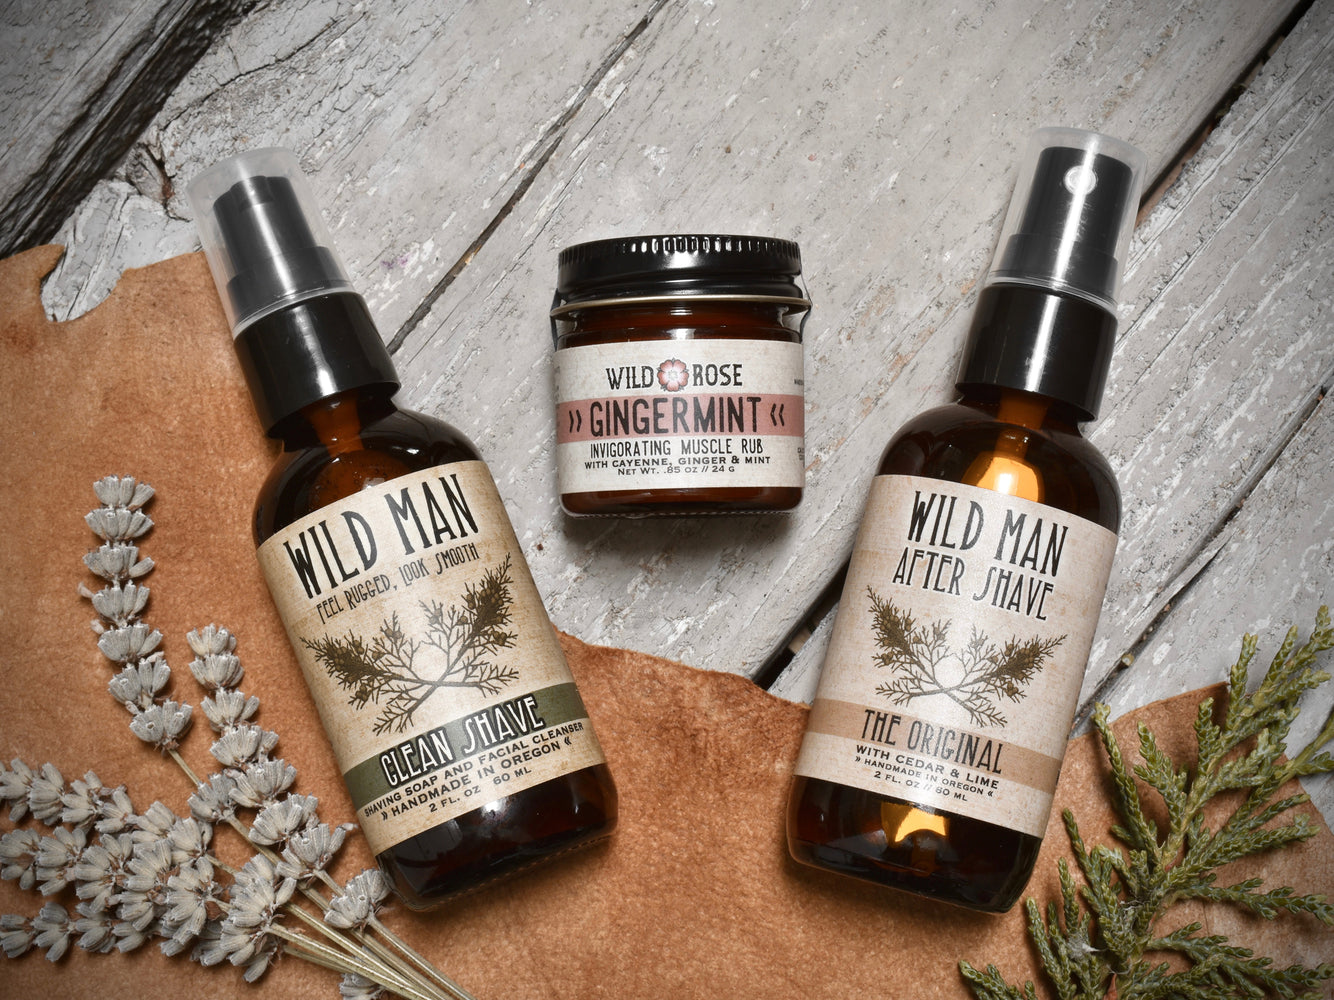 Wild Man - Shaving Gift Set - with Gingermint Muscle Rub